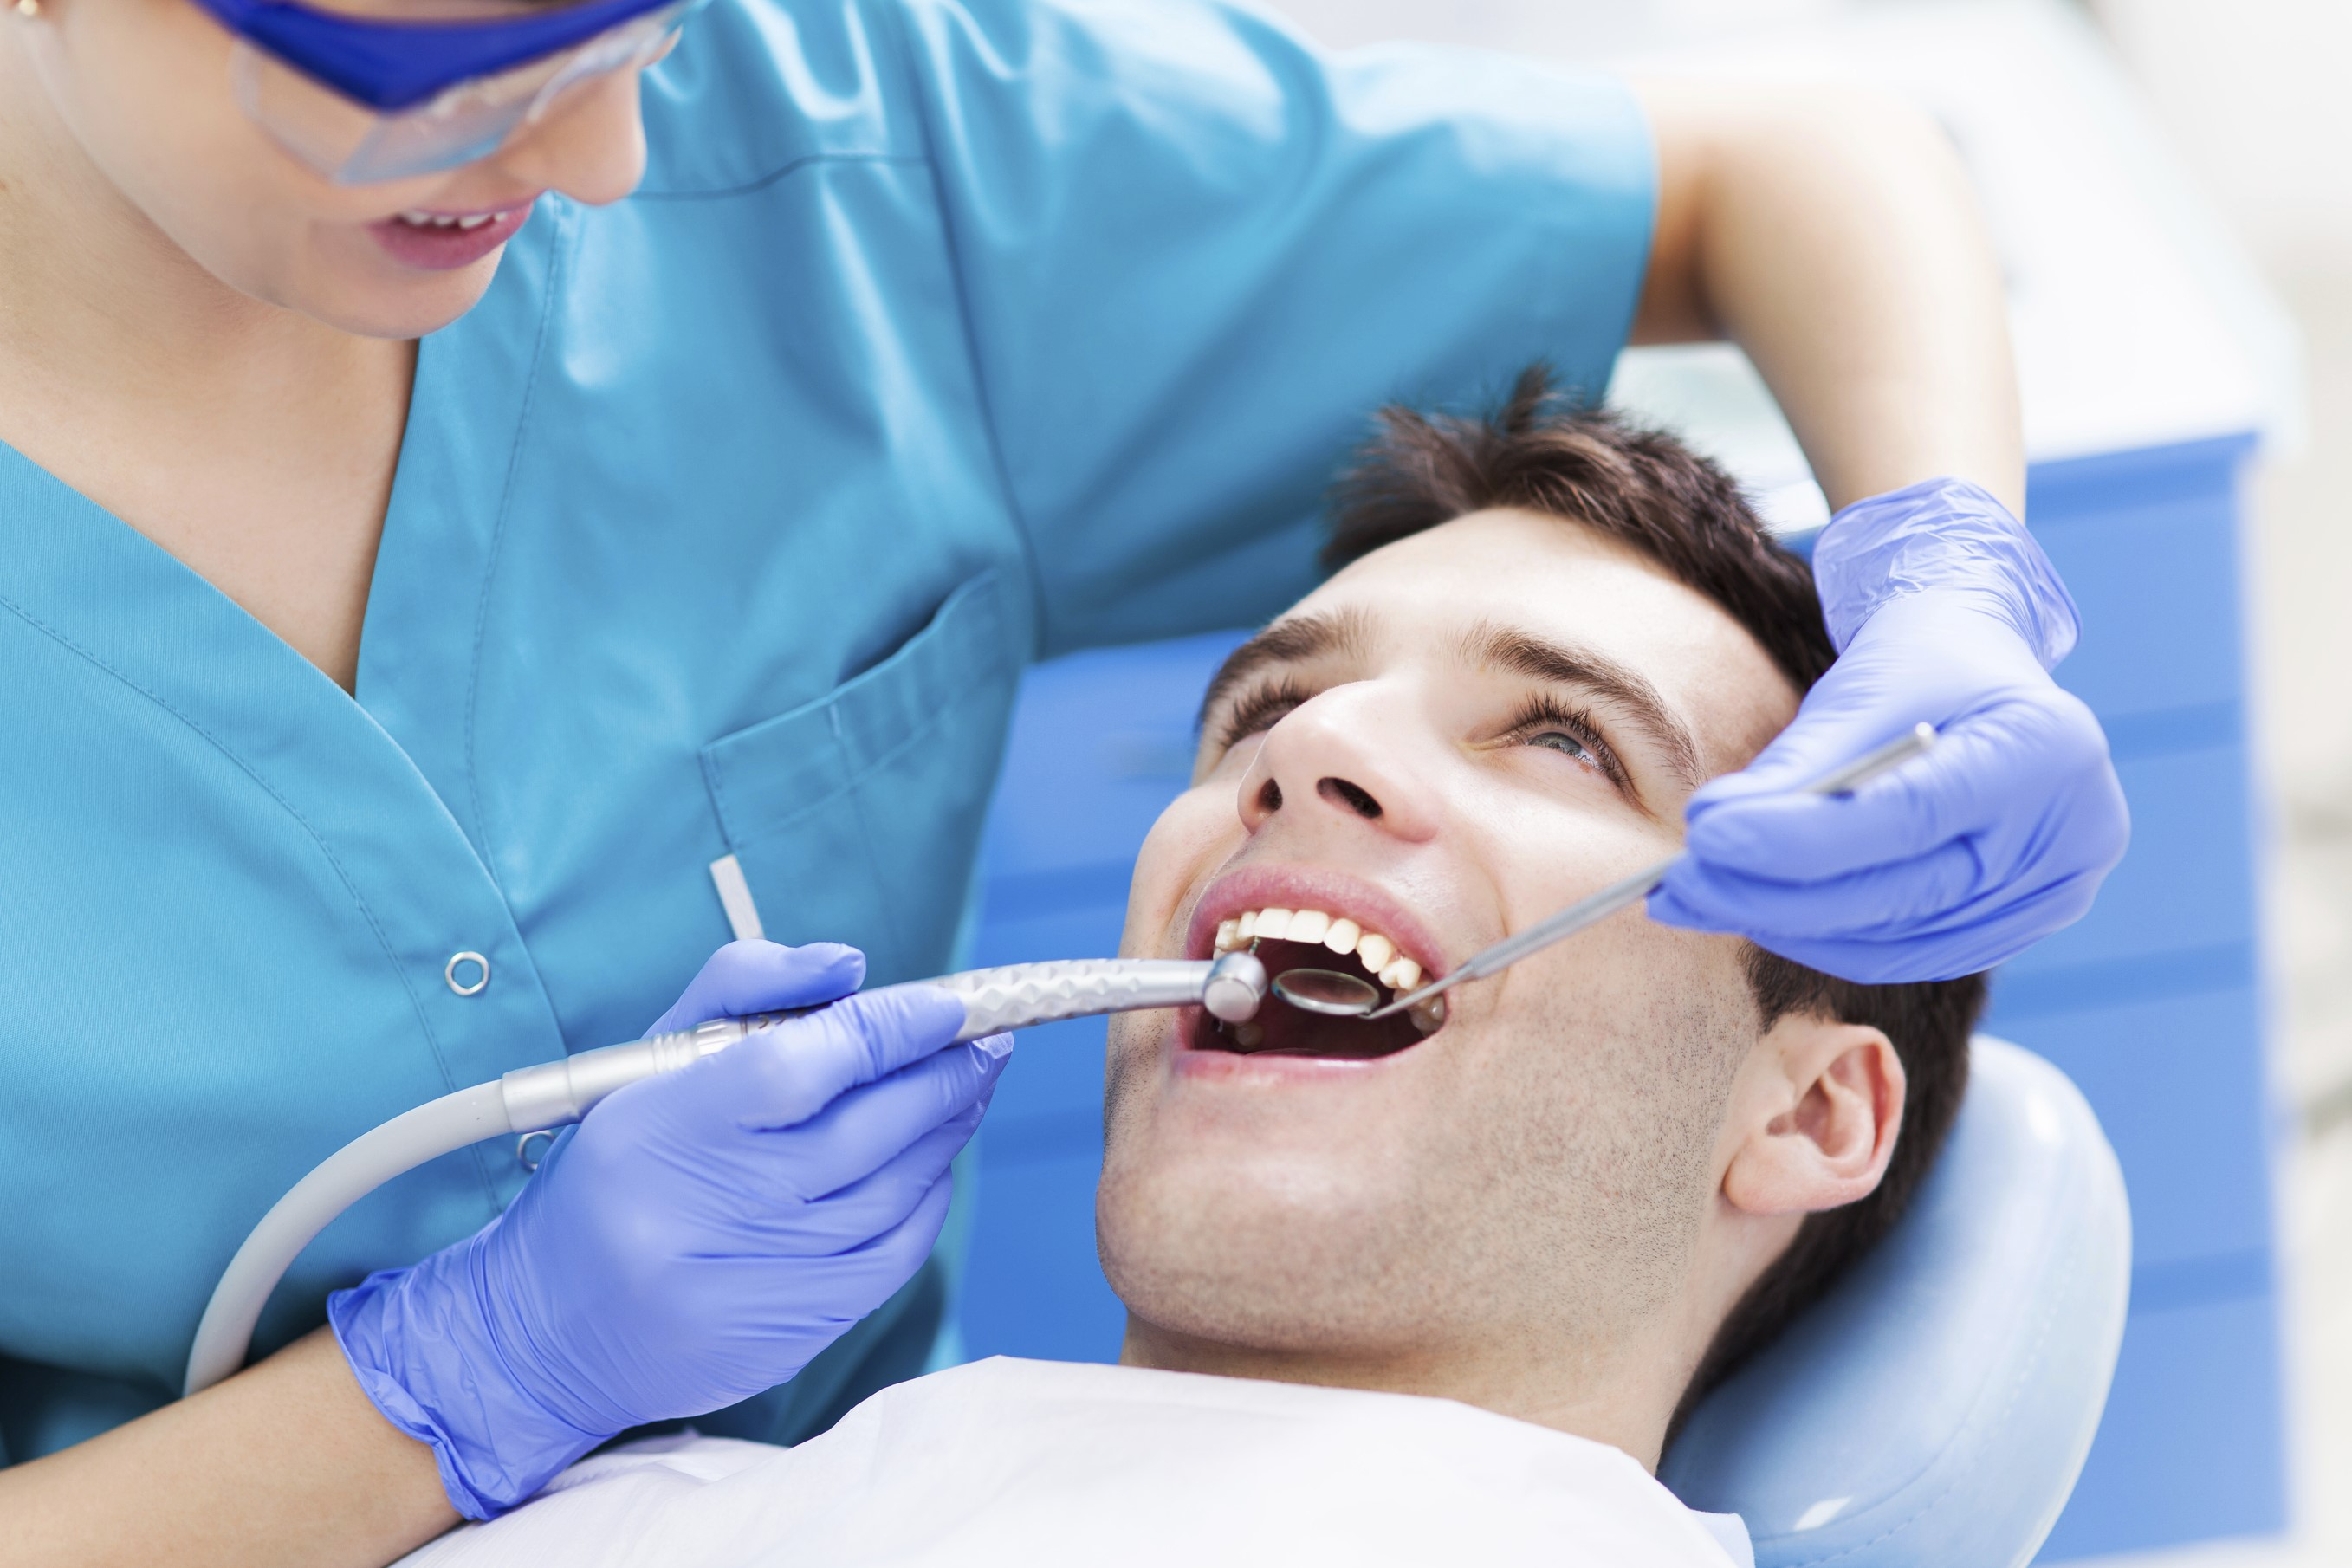 Things to Consider Before Choosing a Dental Insurance Plan